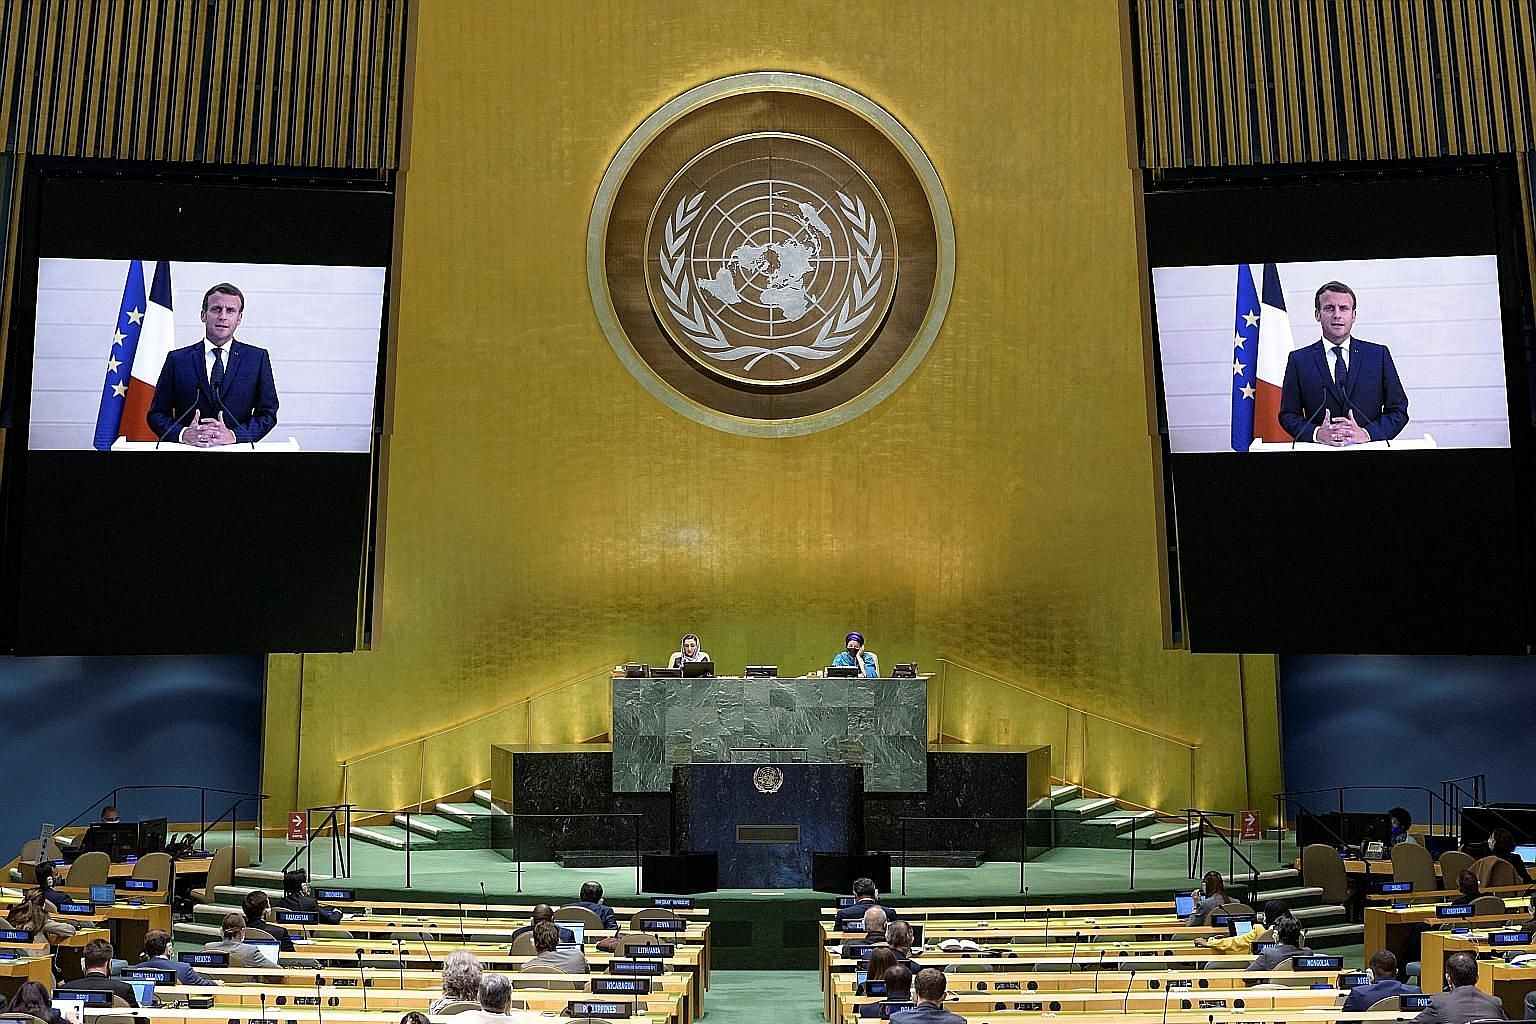 French President Emmanuel Macron making a virtual address to the 75th annual United Nations General Assembly in New York City on Tuesday. PHOTO: REUTERS